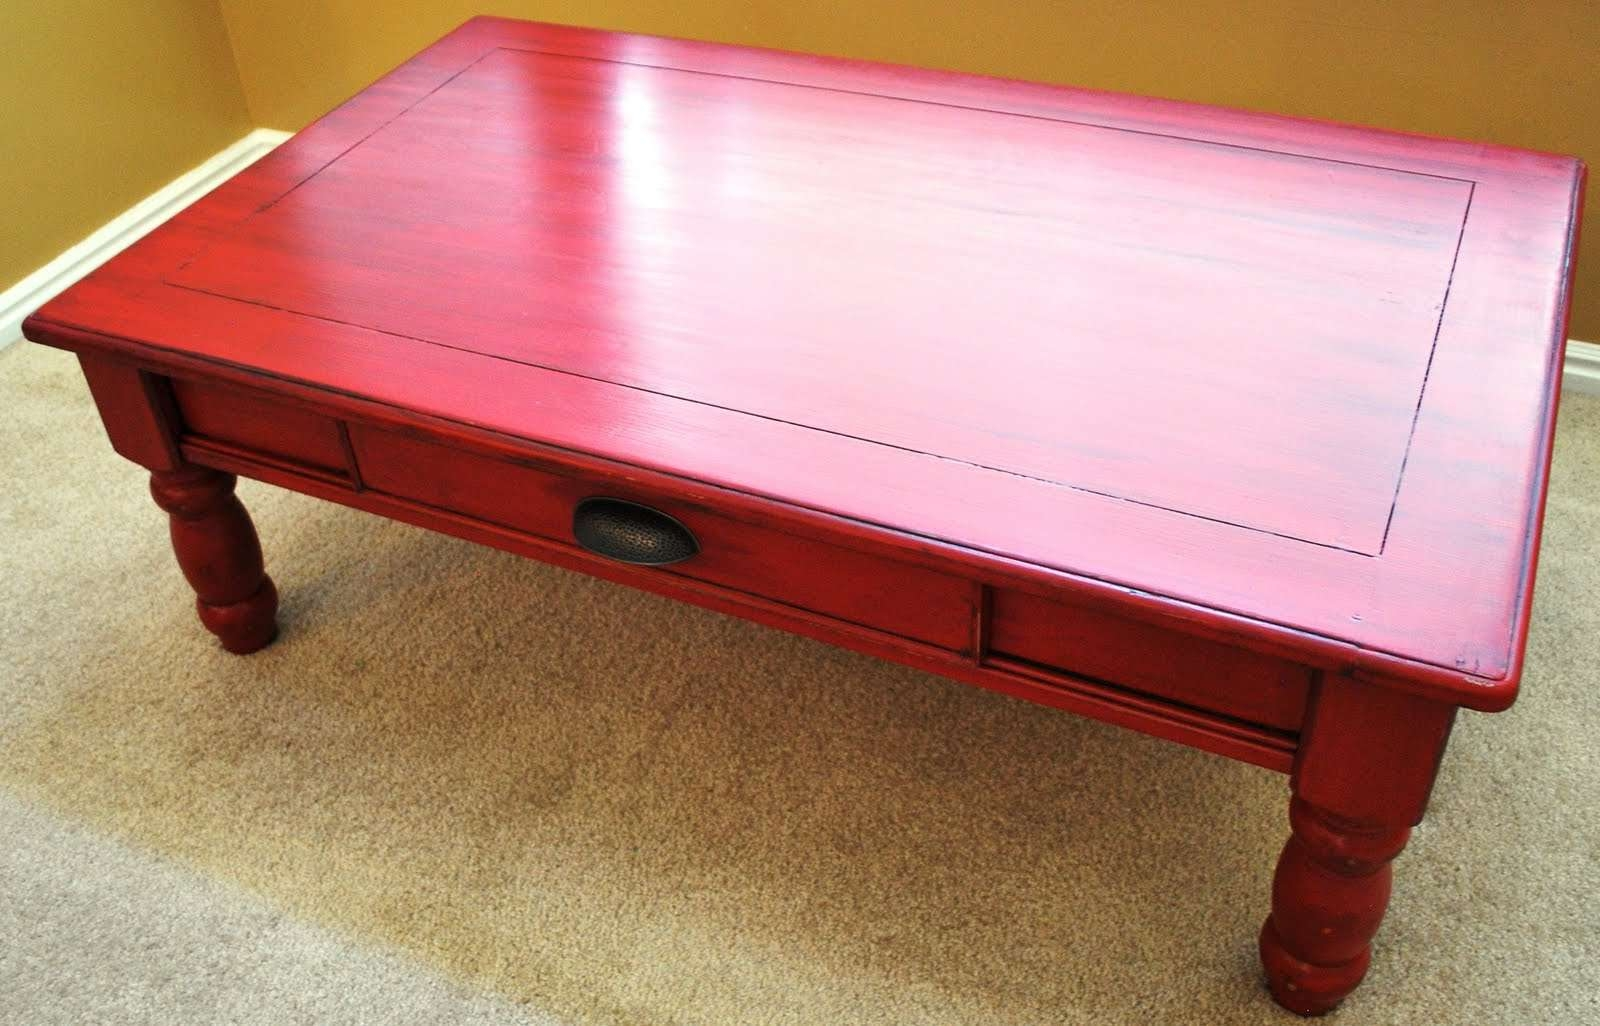 Most Popular Red Coffee Tables For Lovely Red Coffee Table 91 For Home Decor Ideas With Red Coffee (View 8 of 20)